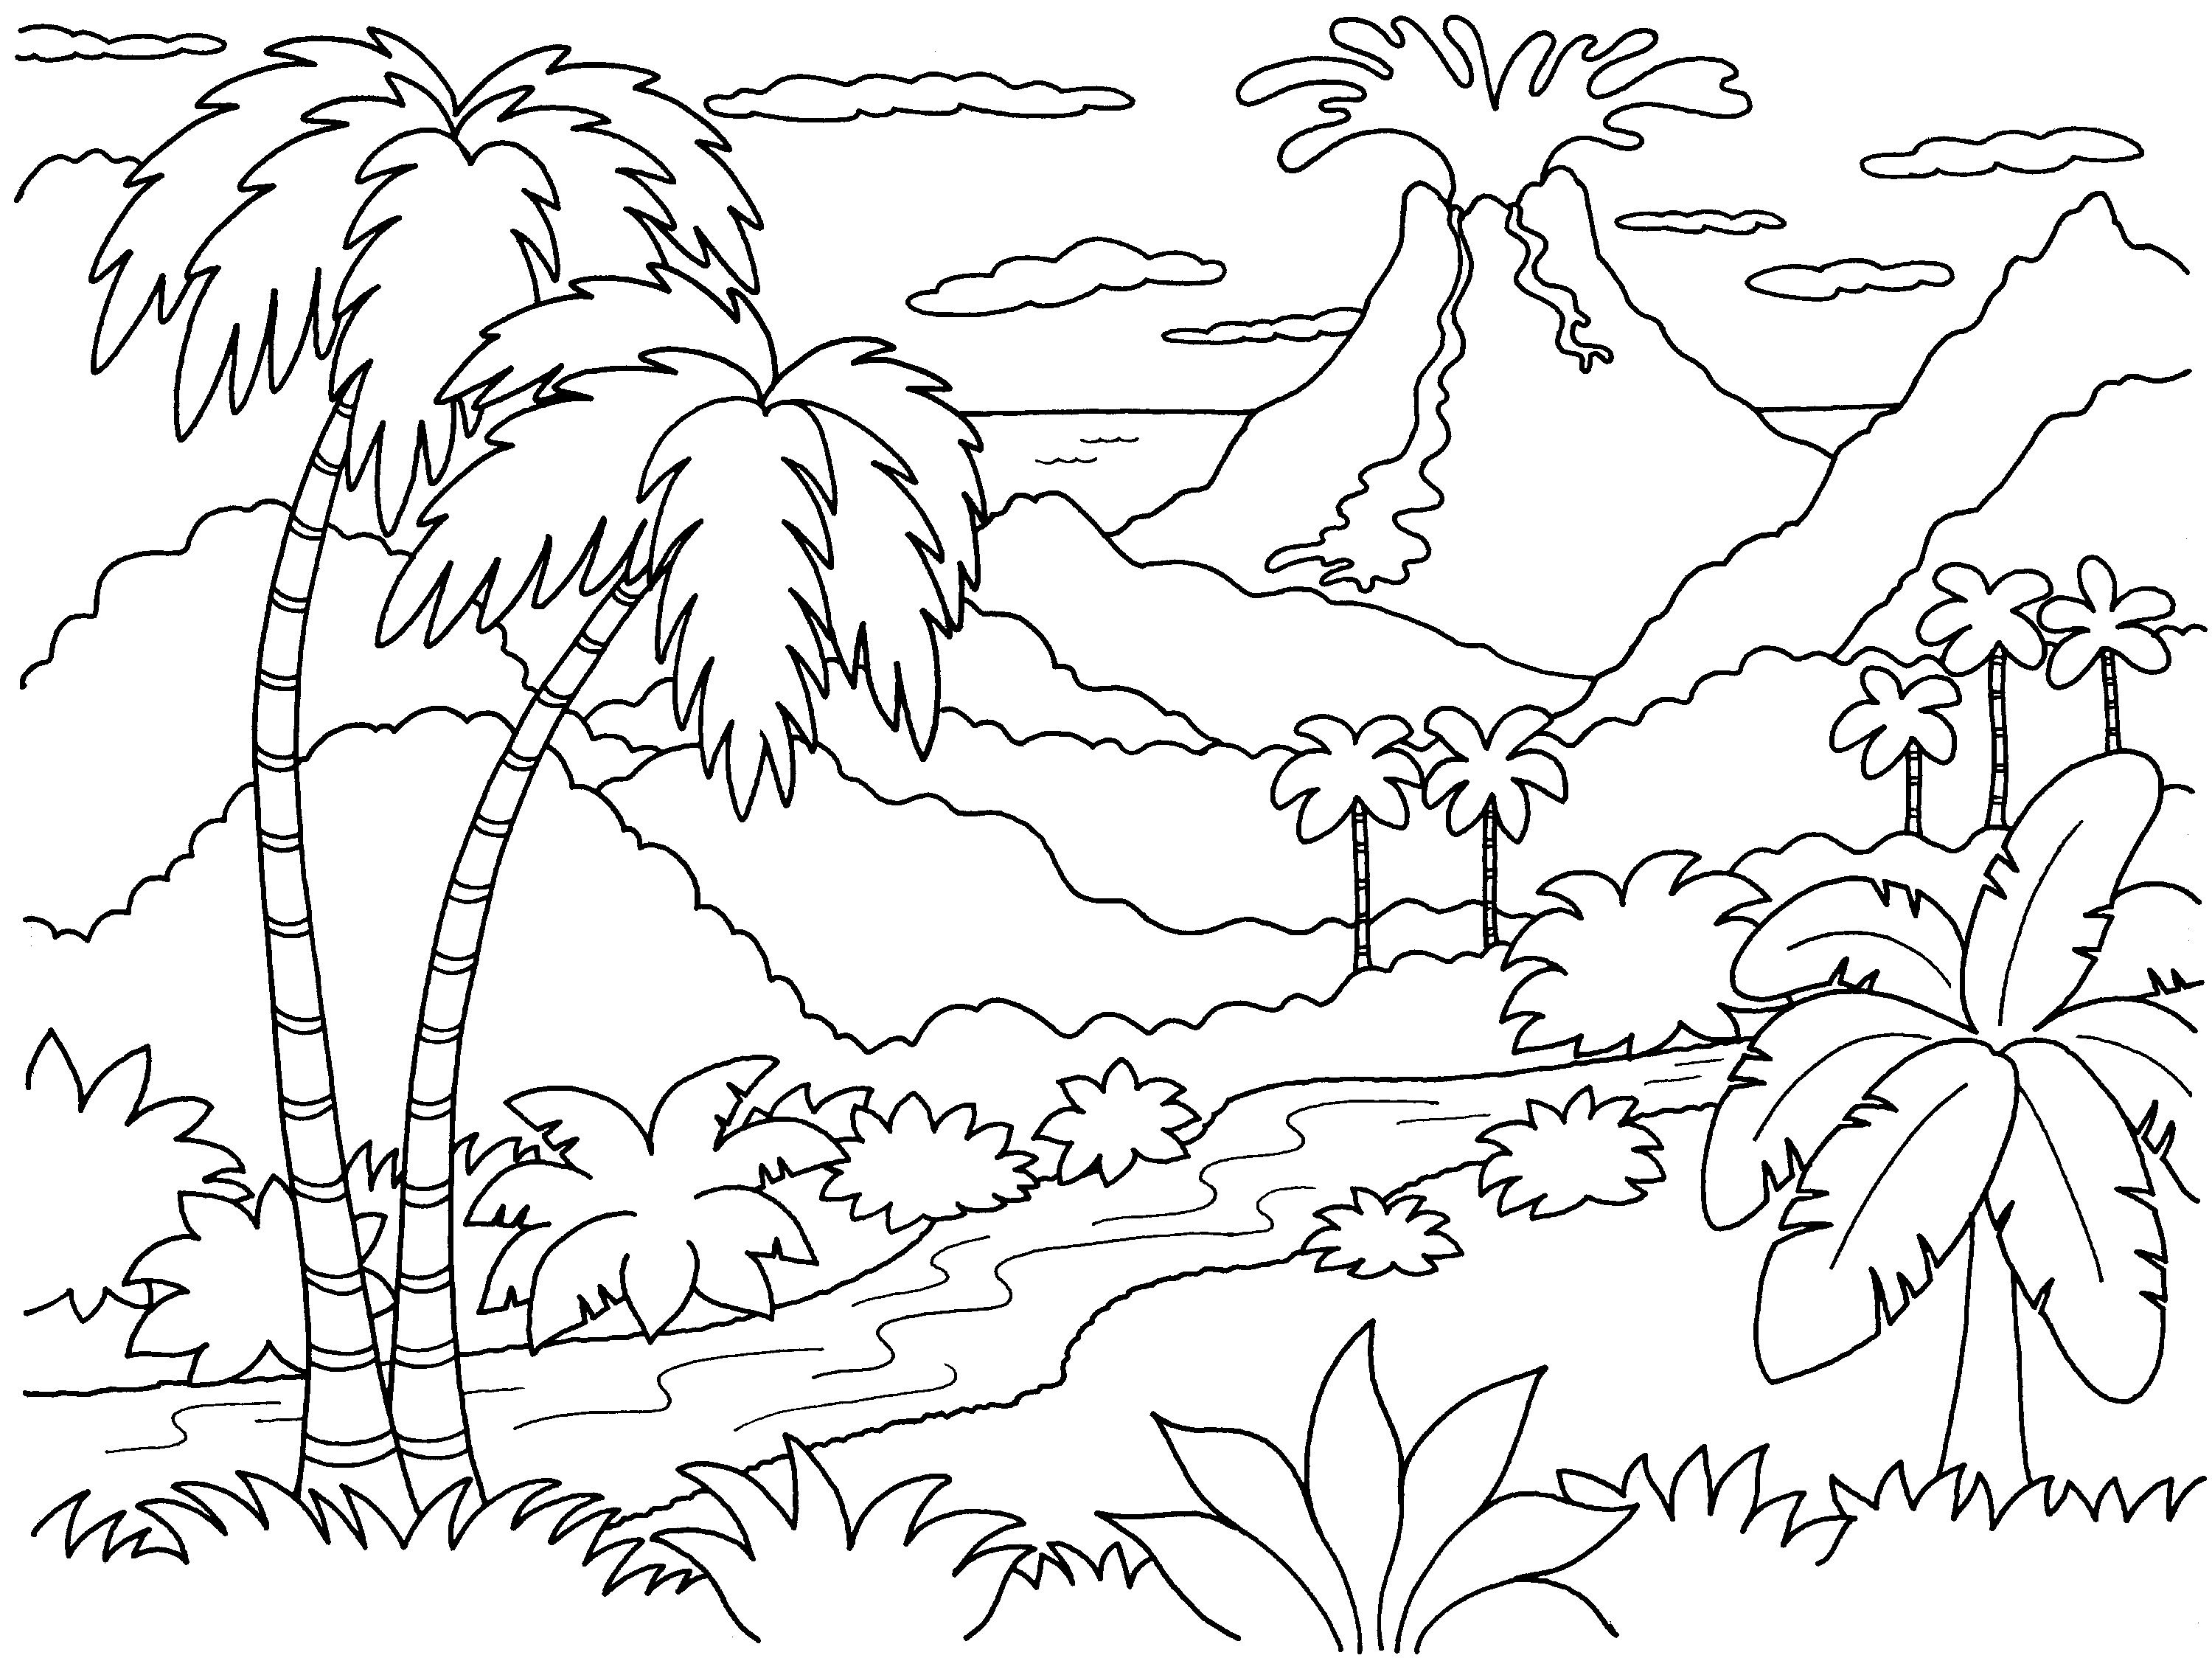 Coloring Page Landscape - Coloring pages landscape mountain landscape coloring pages my nursery class pinterest nature coloring sheet free